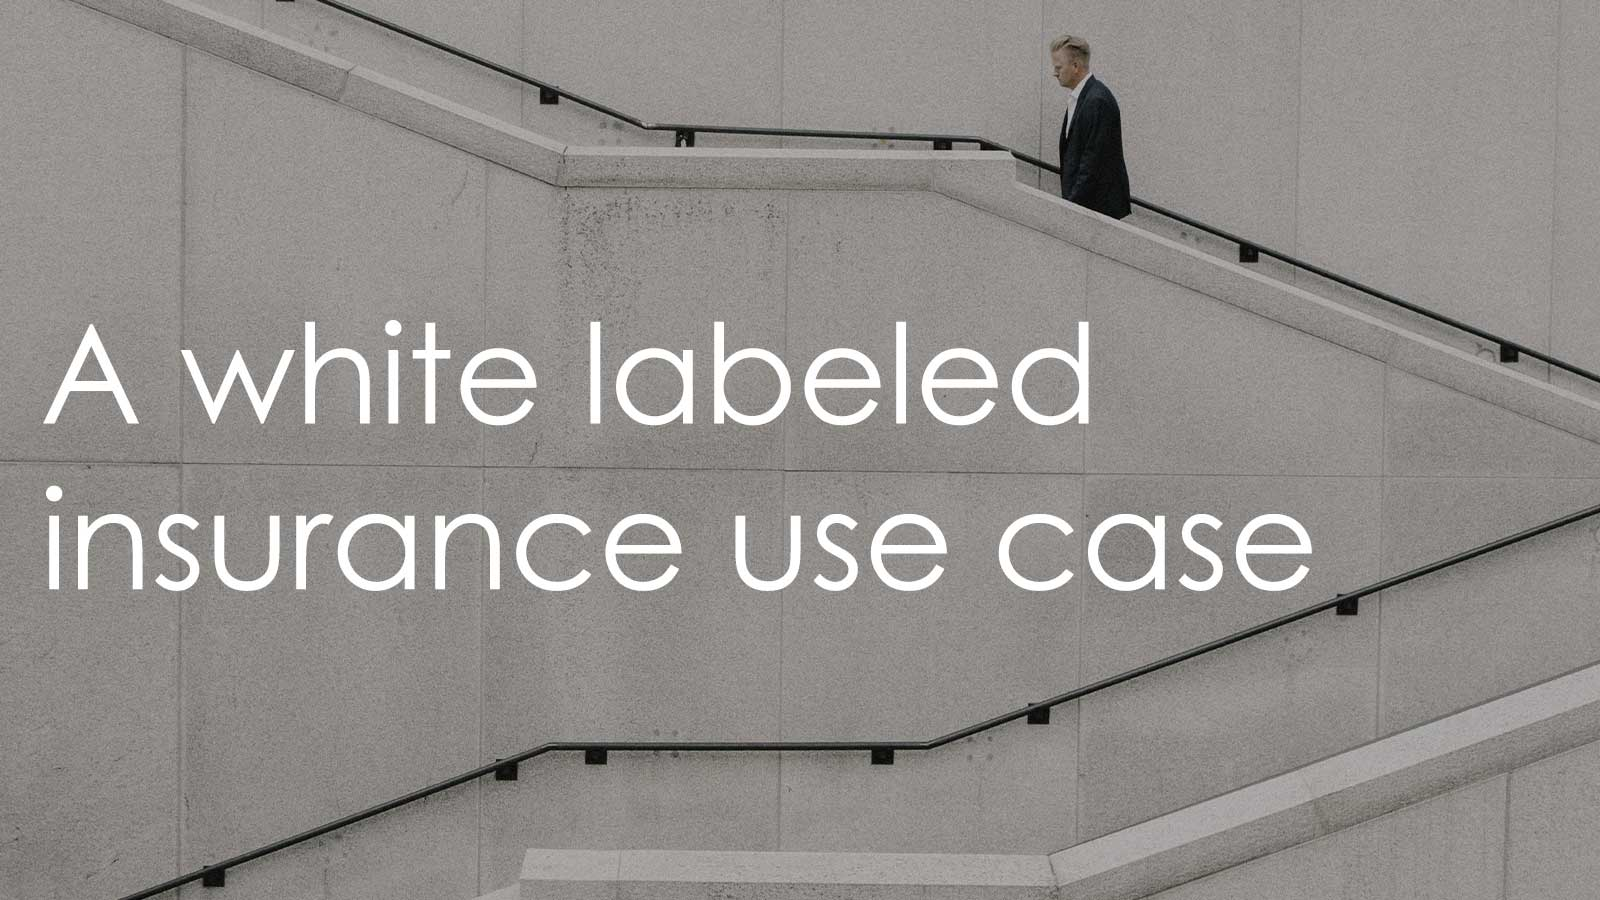 use-case-a-white-labeled-insurance